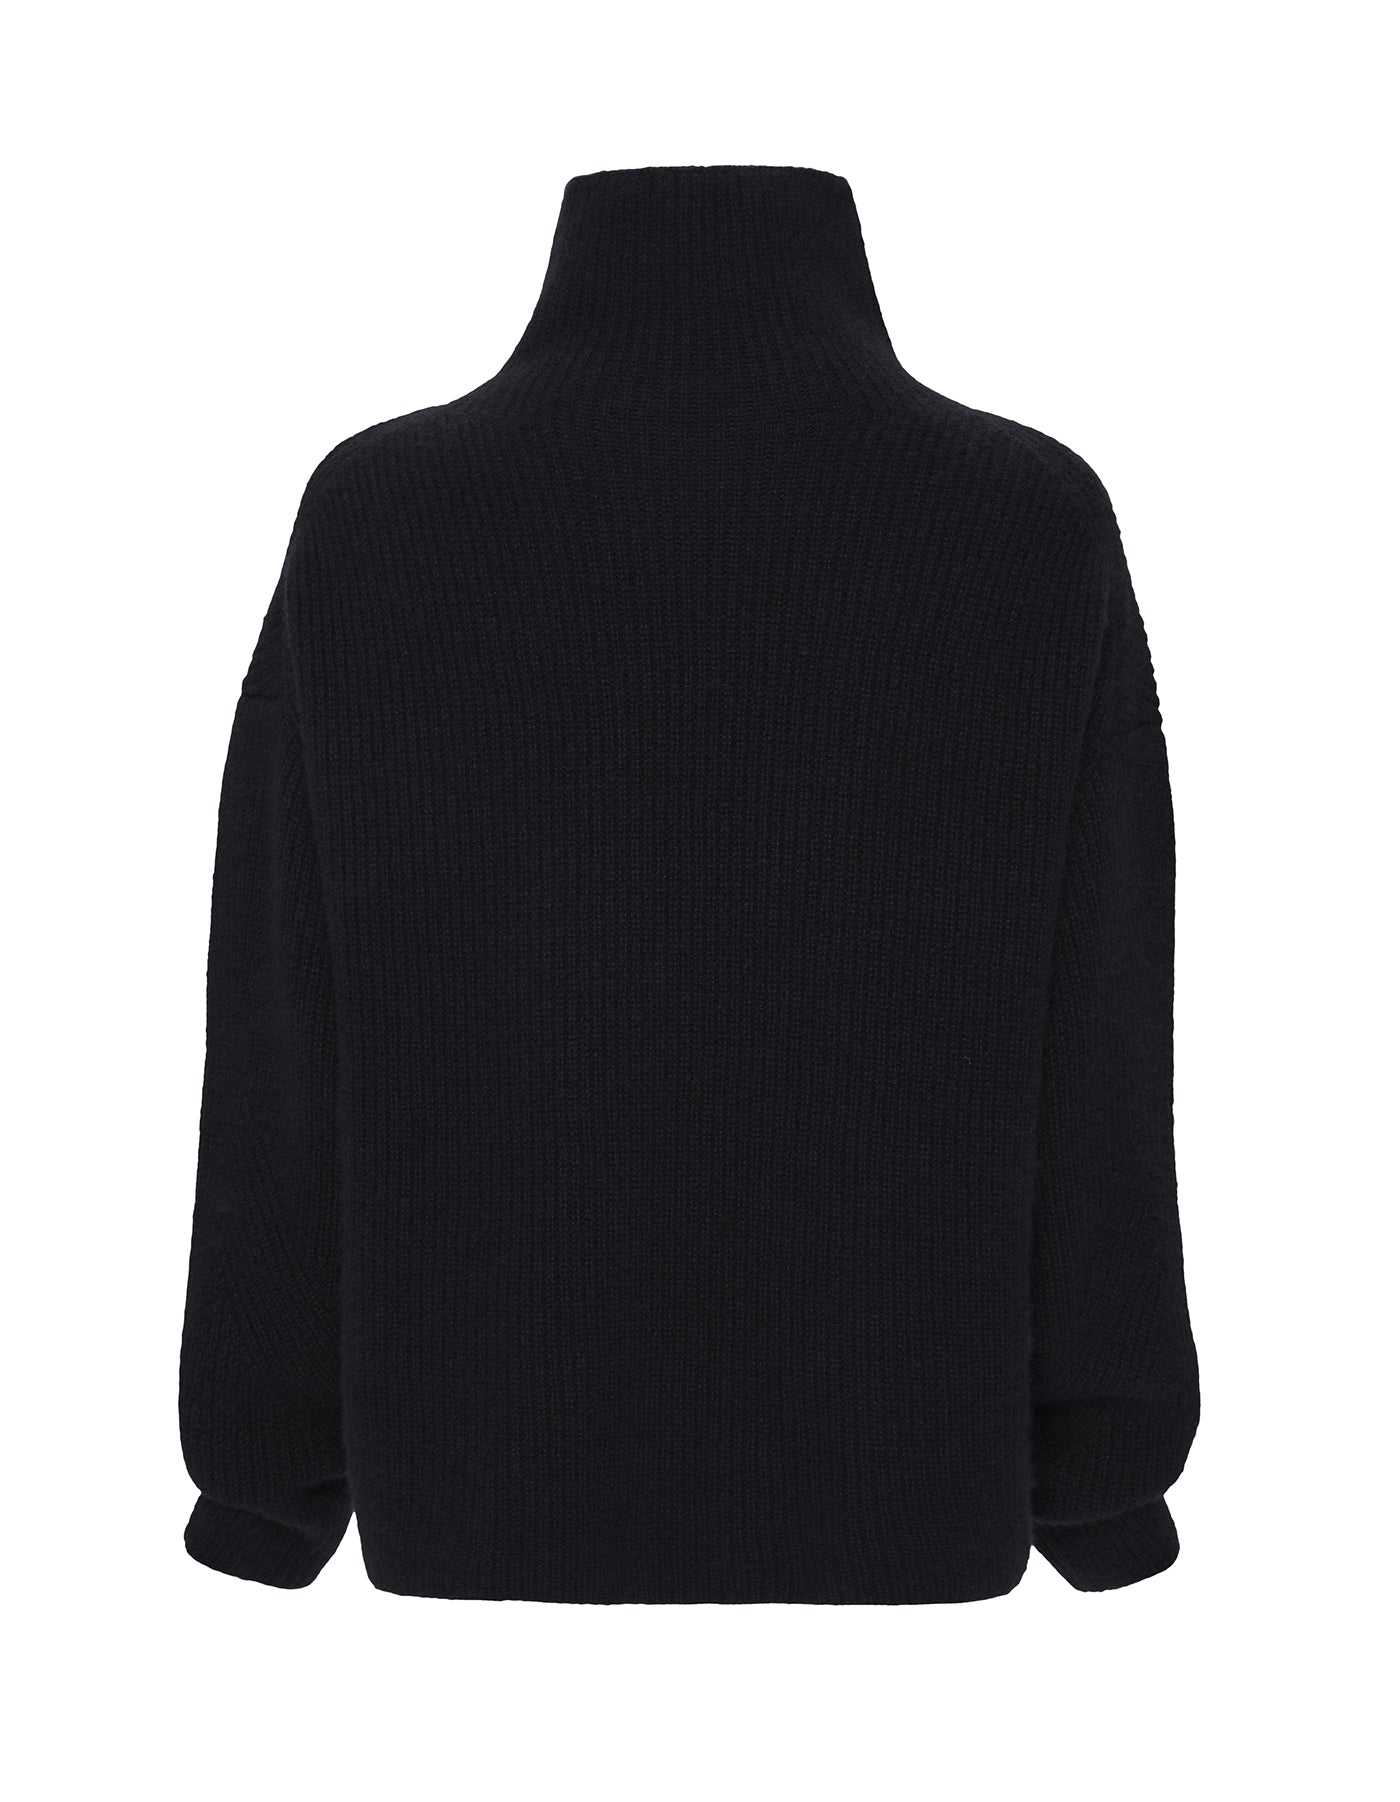 Product 4884771110998, CASHMERE SILK TURTLENECK